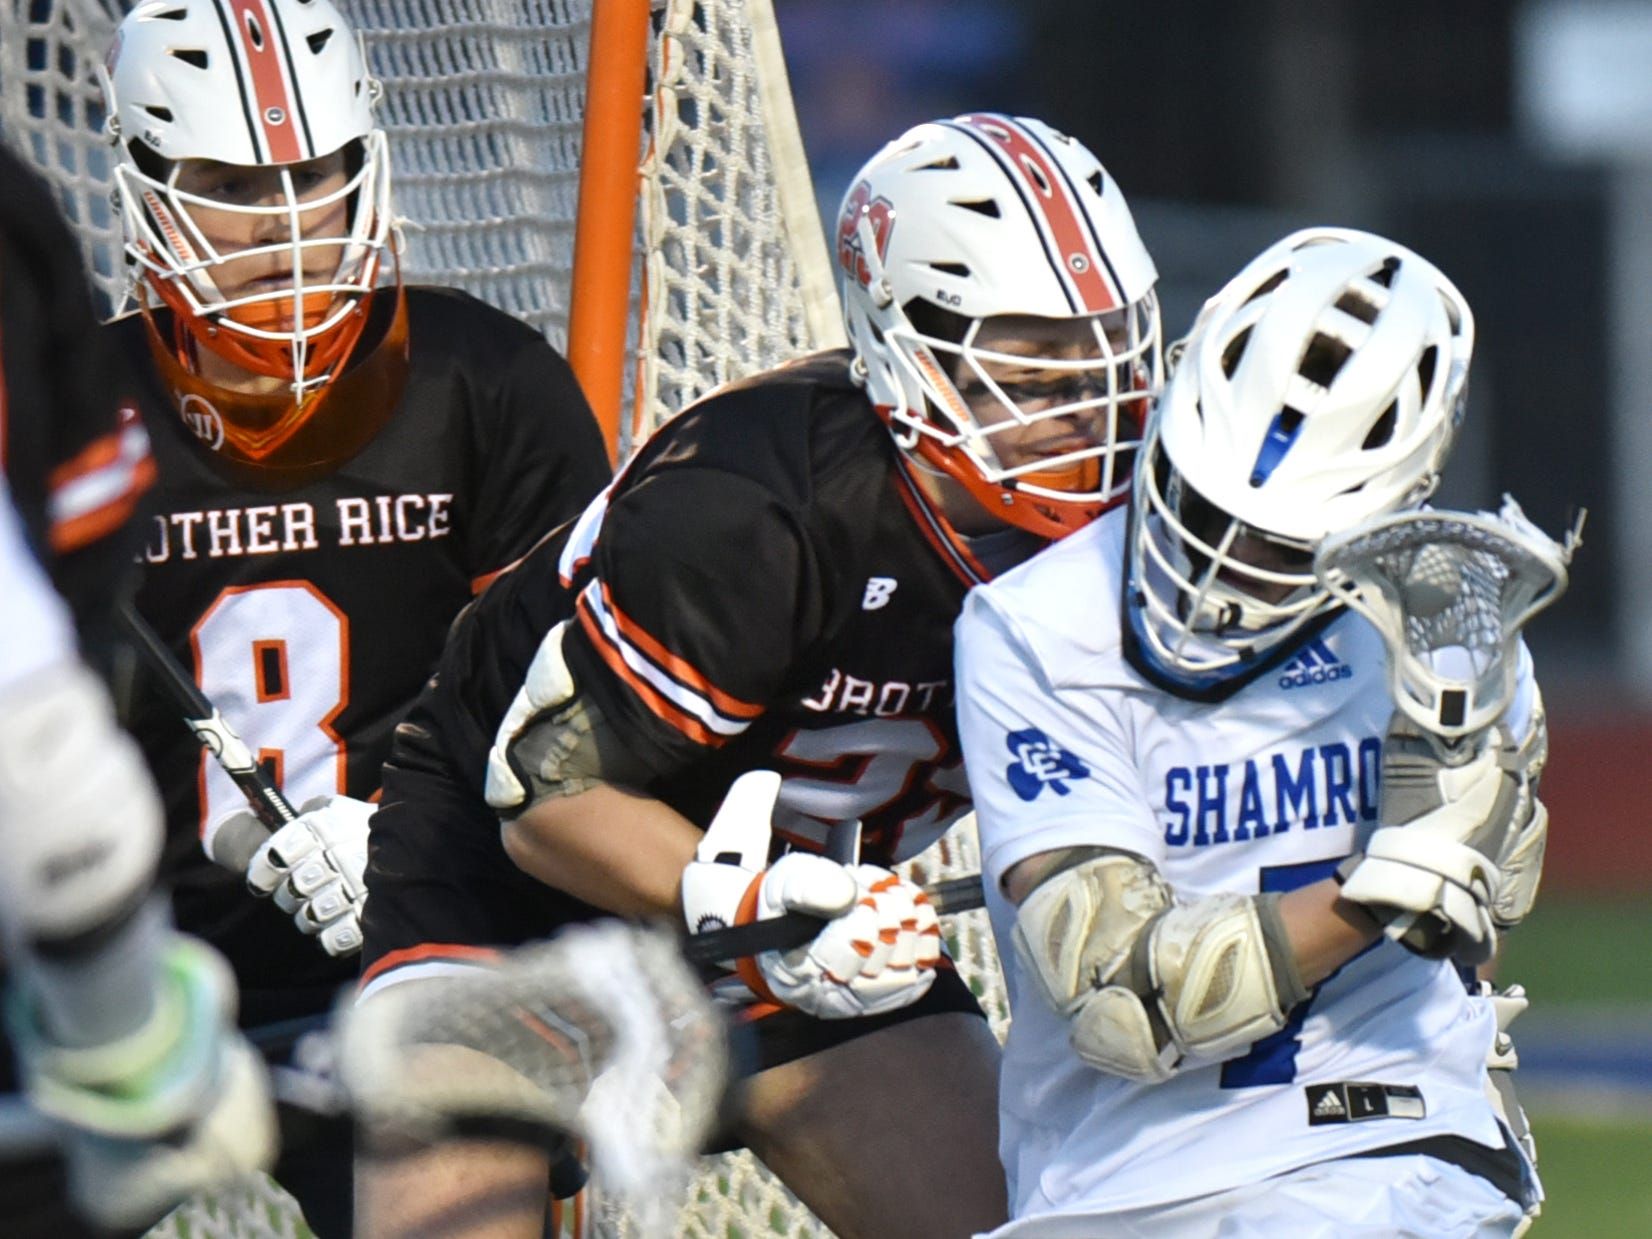 As Brother Rice net-minder Dom Dababbo (#8) keeps an eye on the action, Catholic Central's Ryan Sullivan gets crunched by a cross-check by Rice's Jack Lockwood.